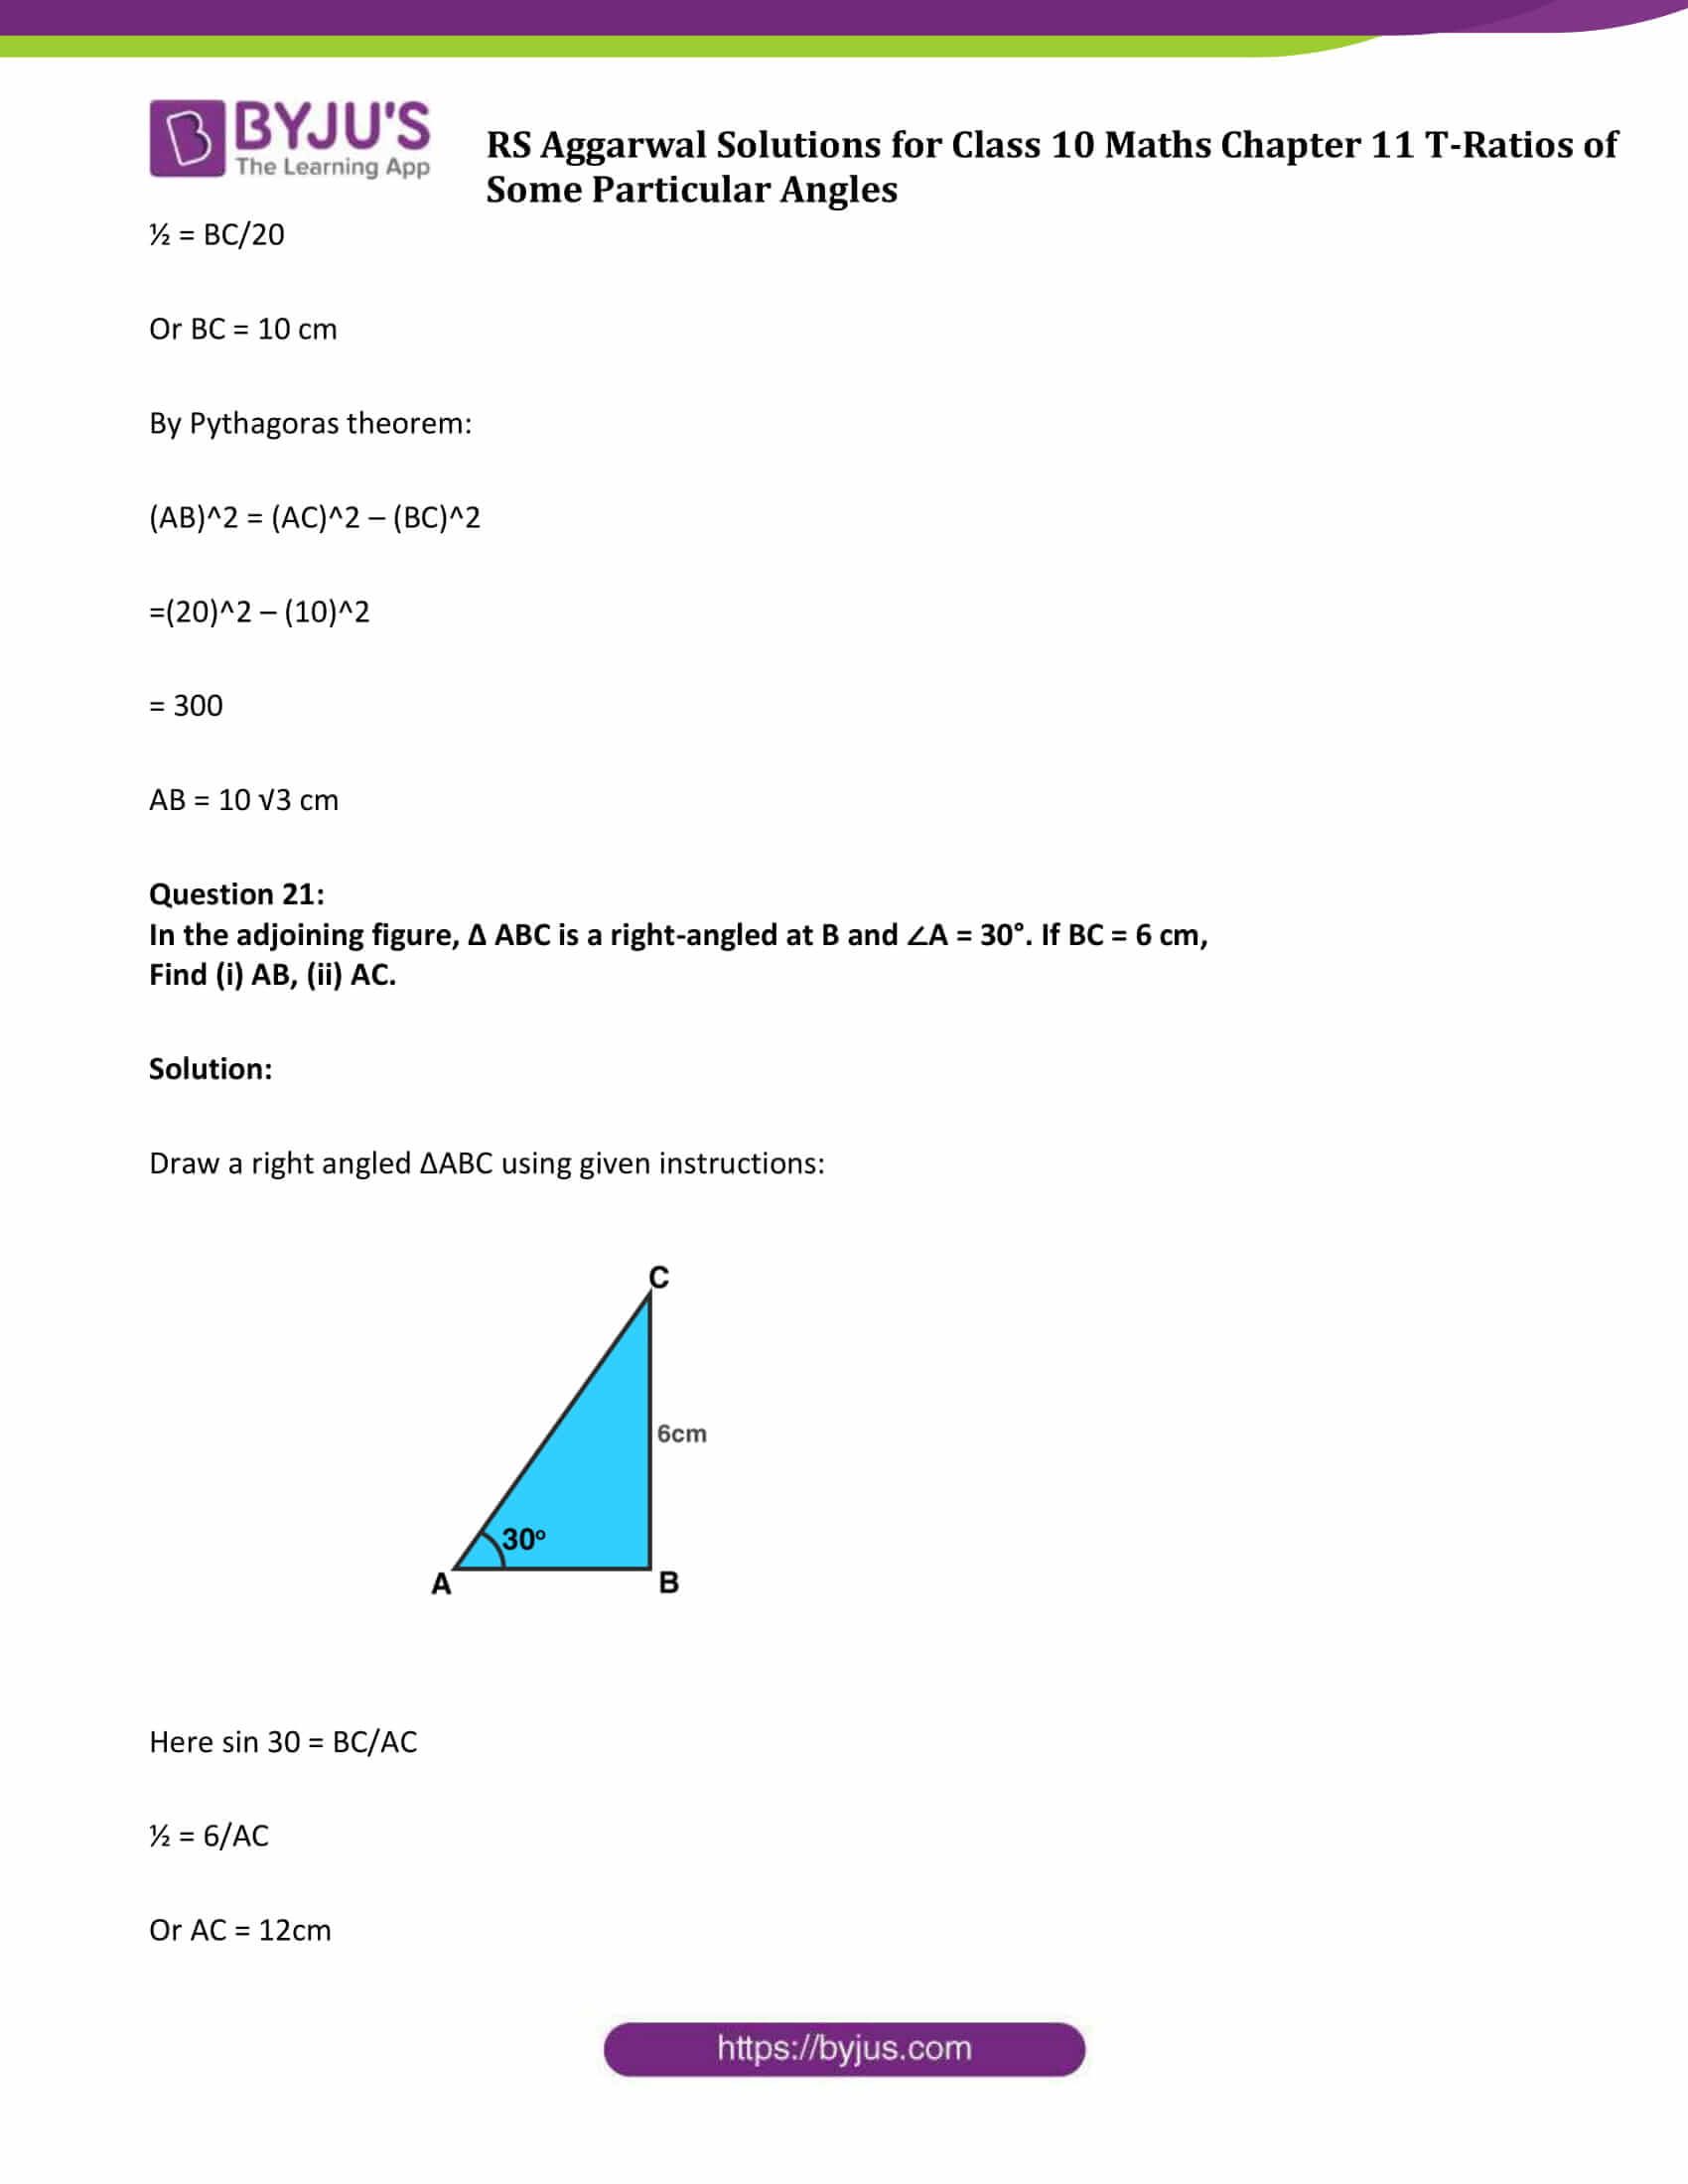 RS Aggarwal Sol class 10 Maths Chapter 11